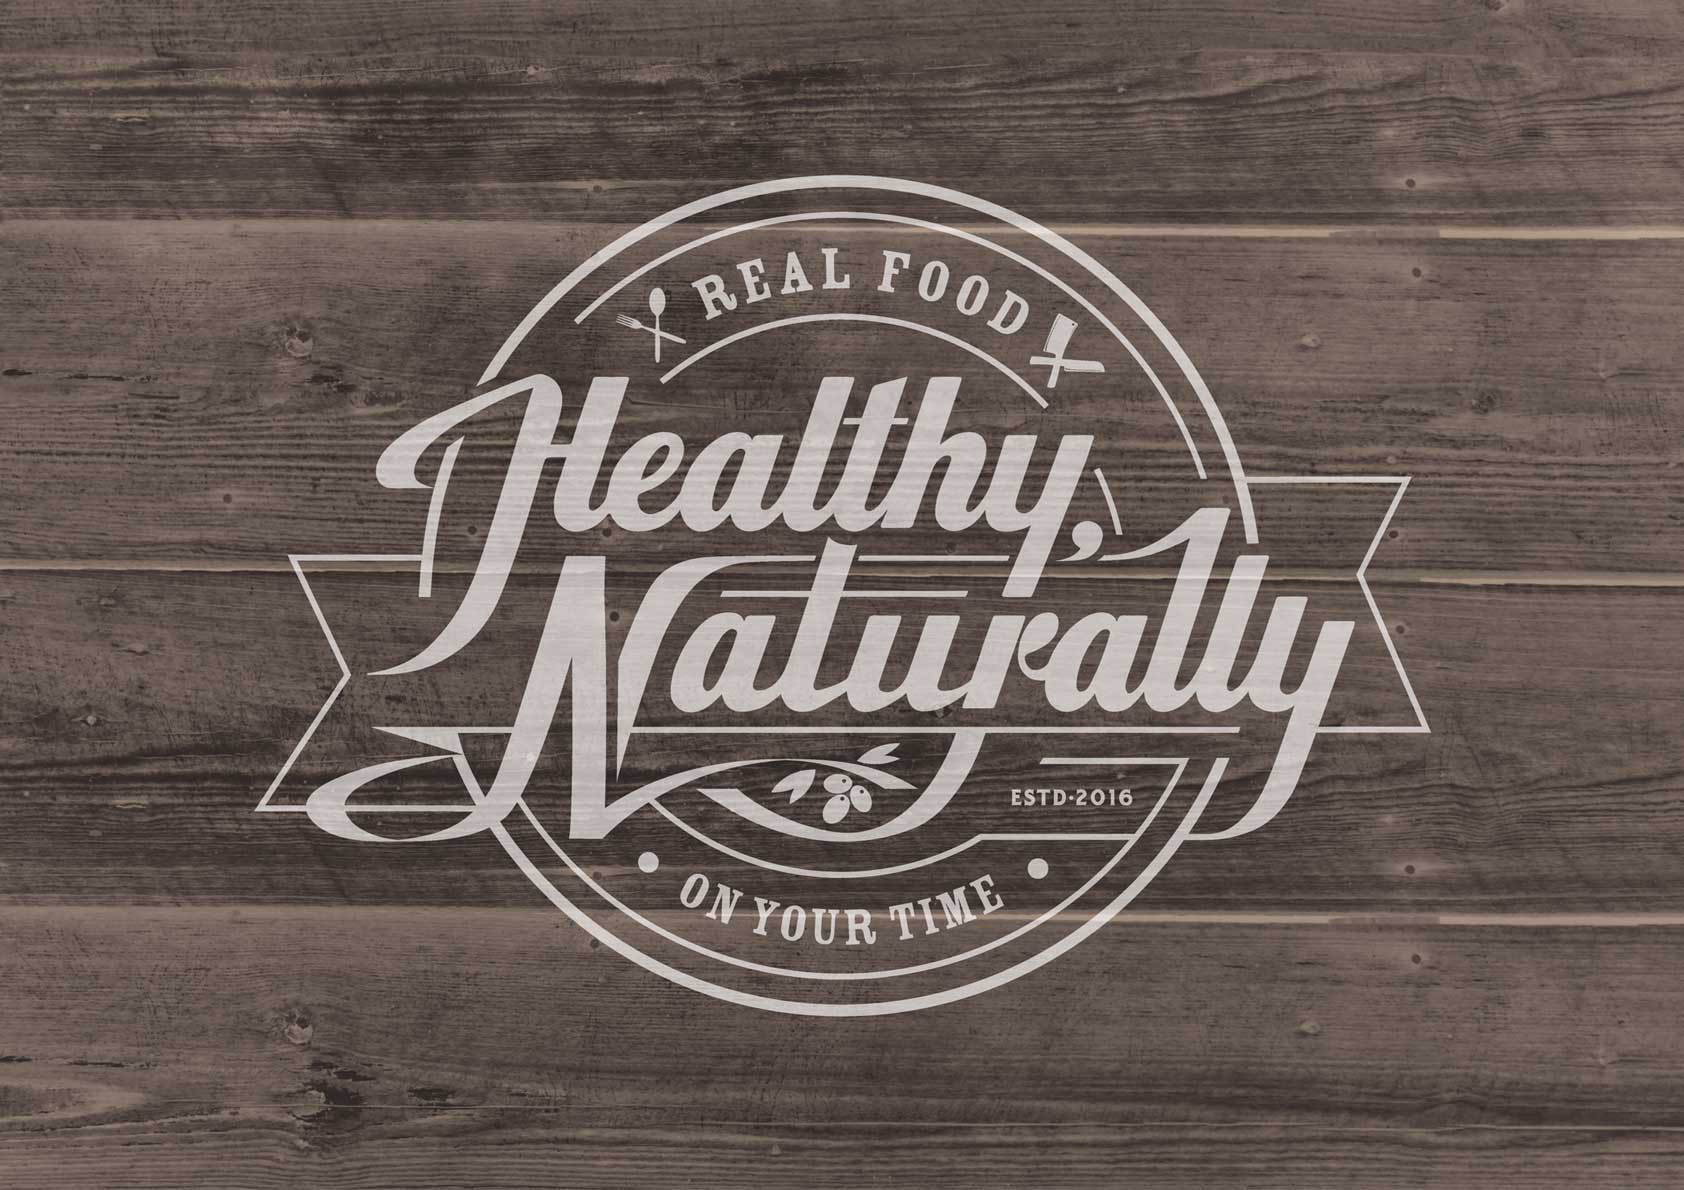 Create a badass vintage/rustic/modern logo for Healthy, Naturally - a real food meal prep company